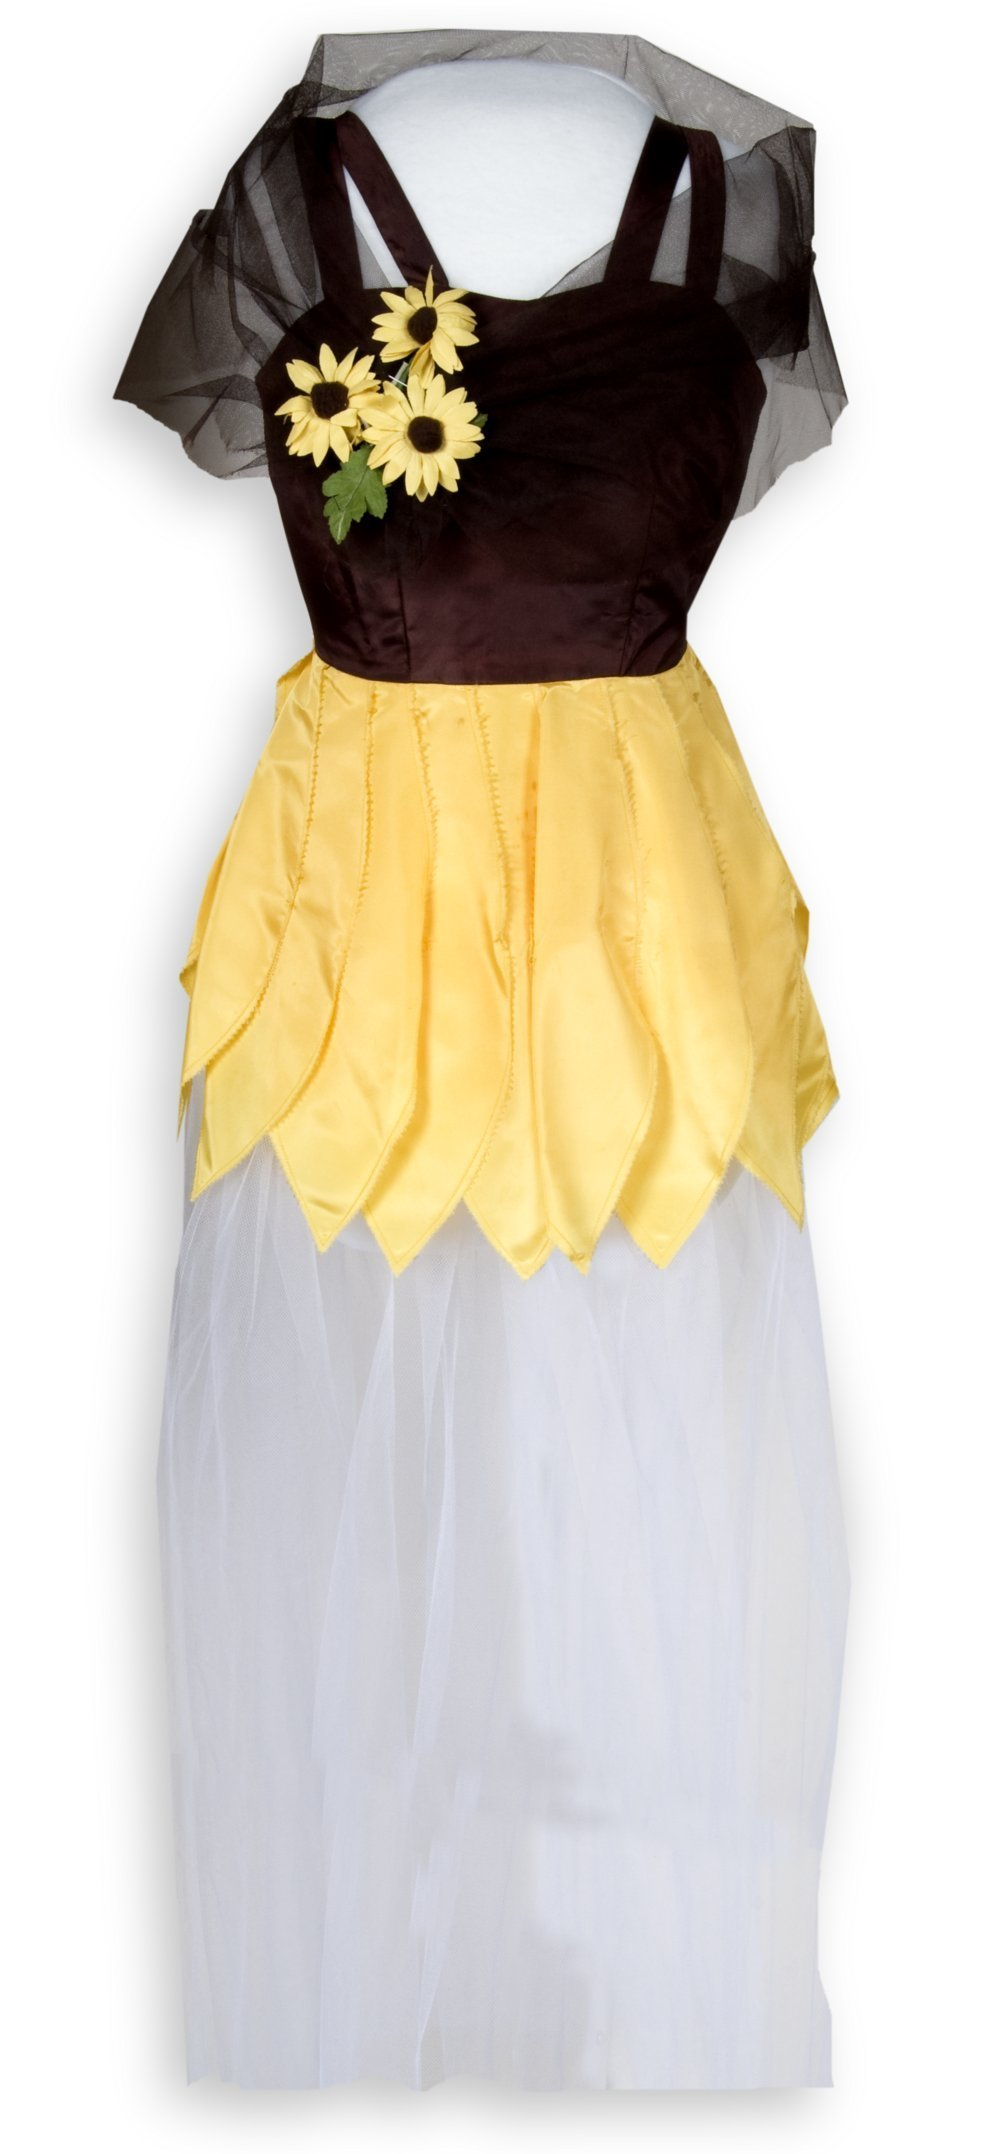 Sunflower costume - 1